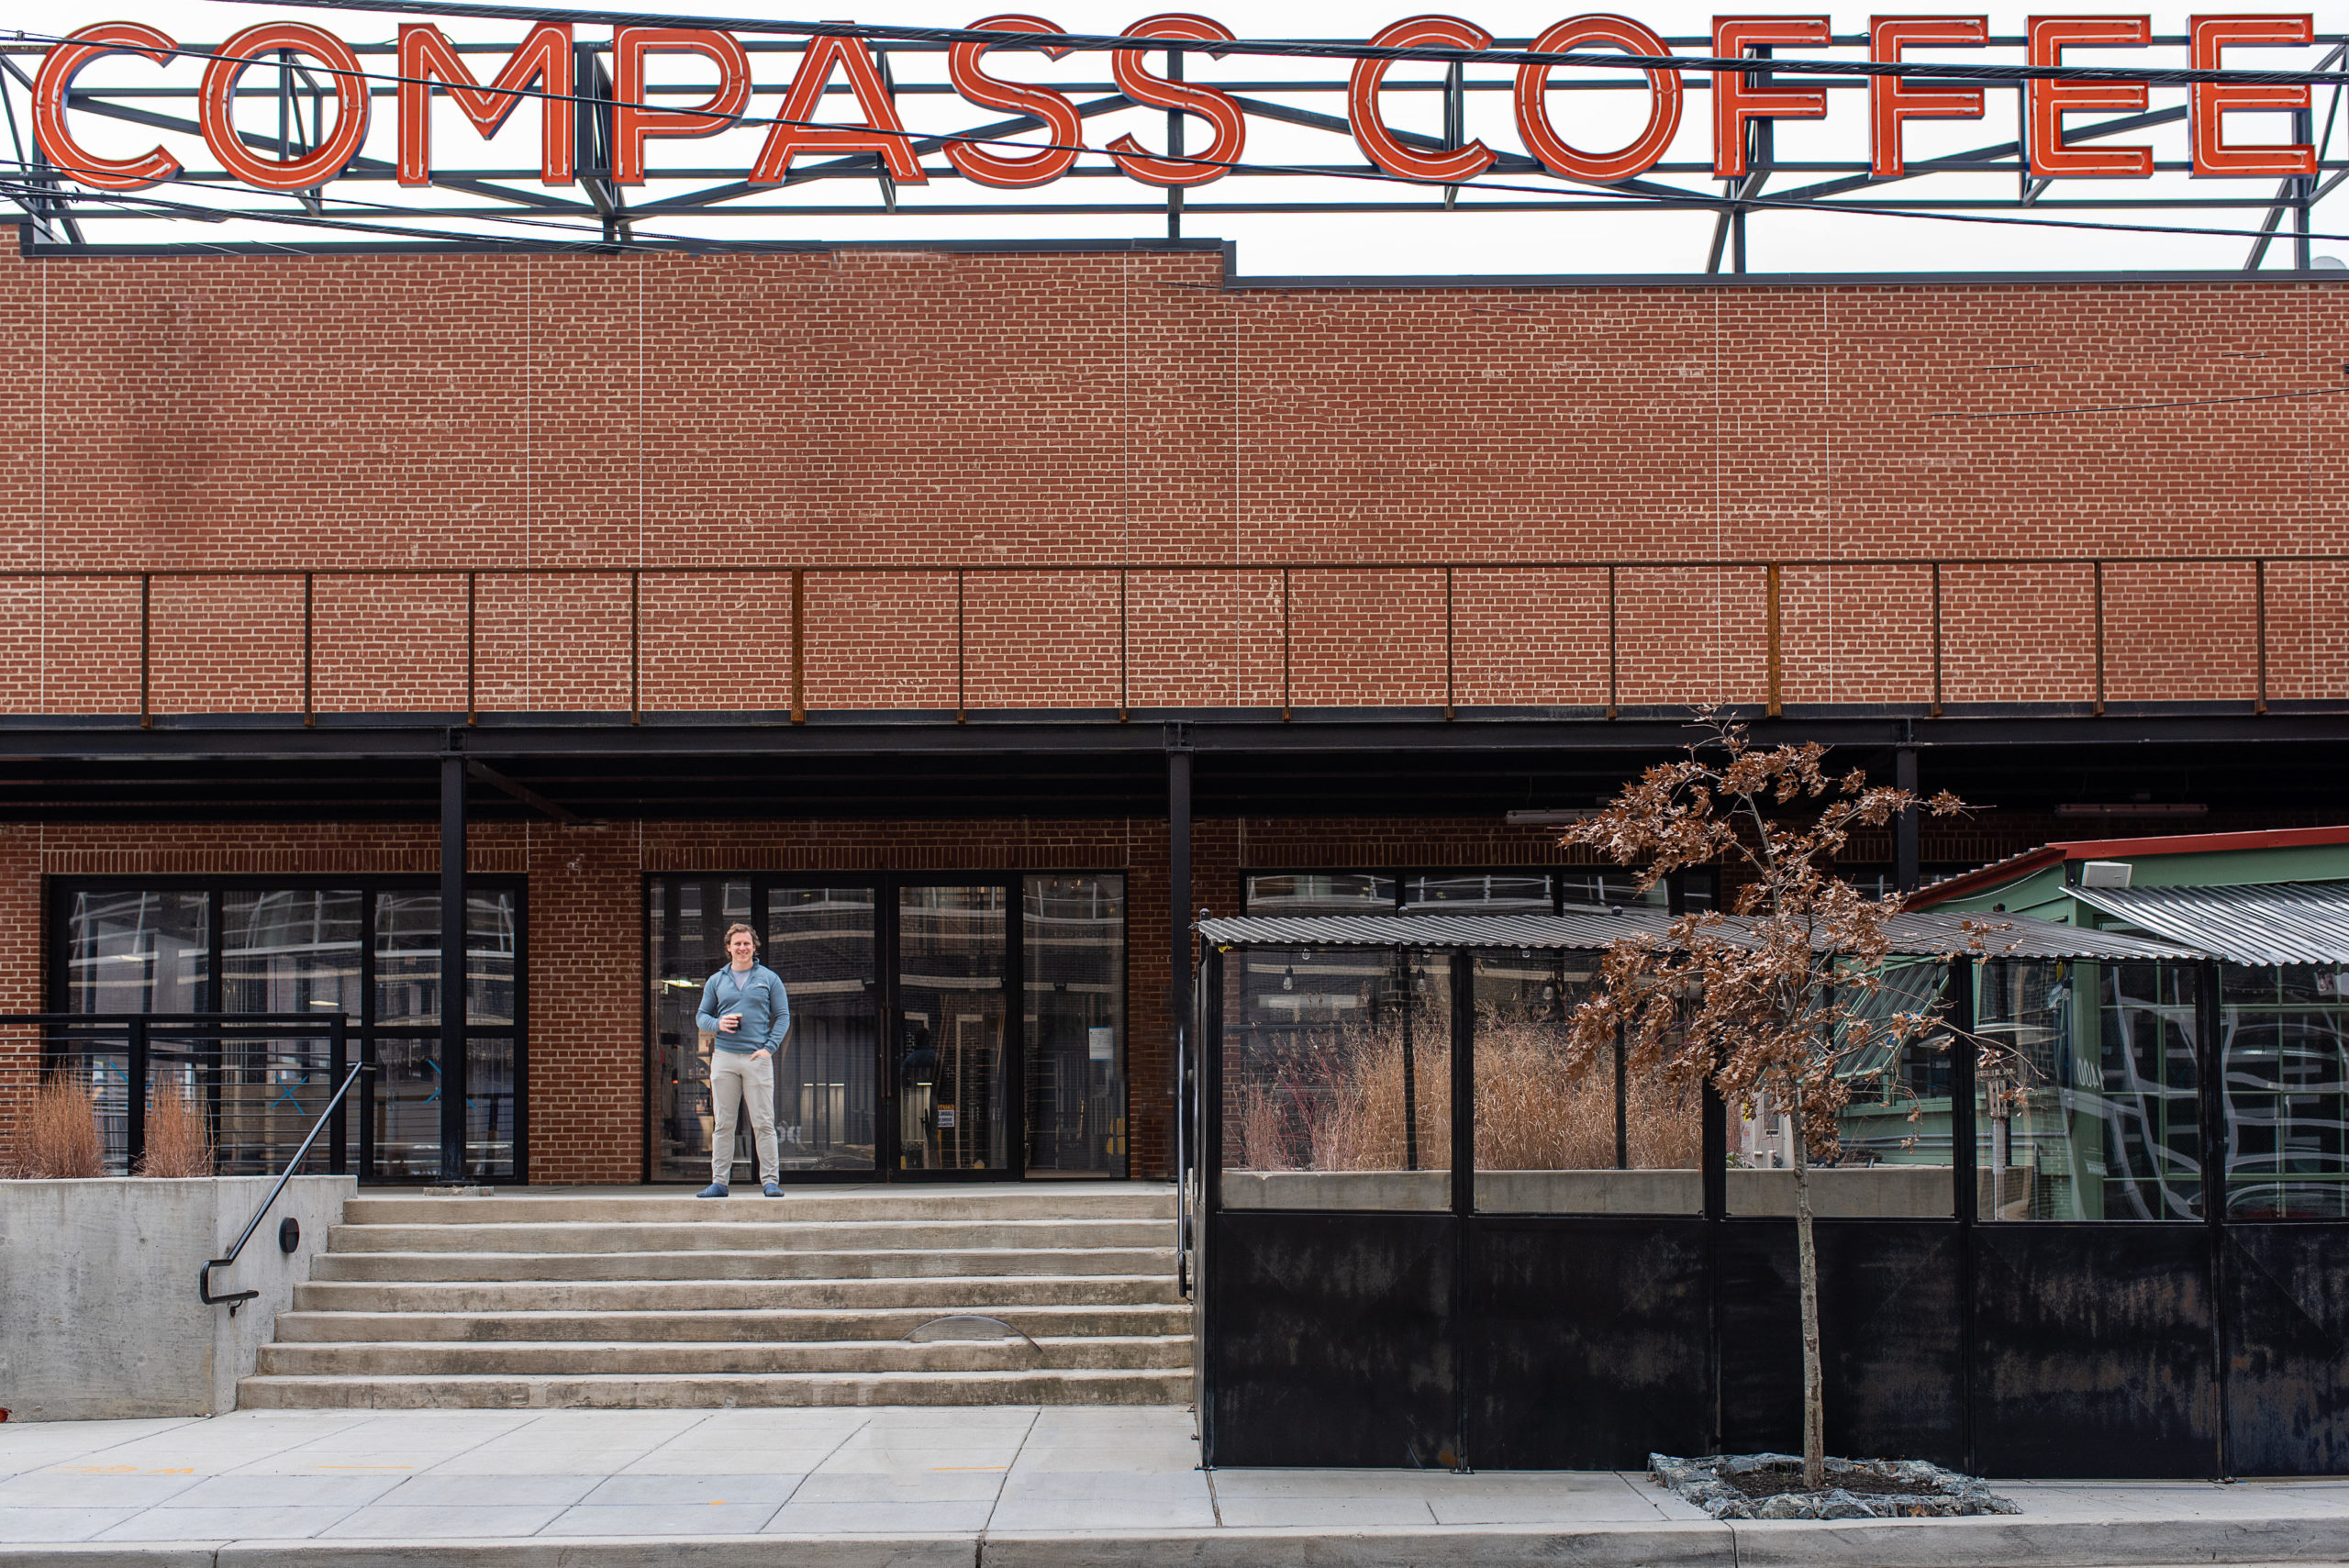 Michael Haft at Compass Coffee